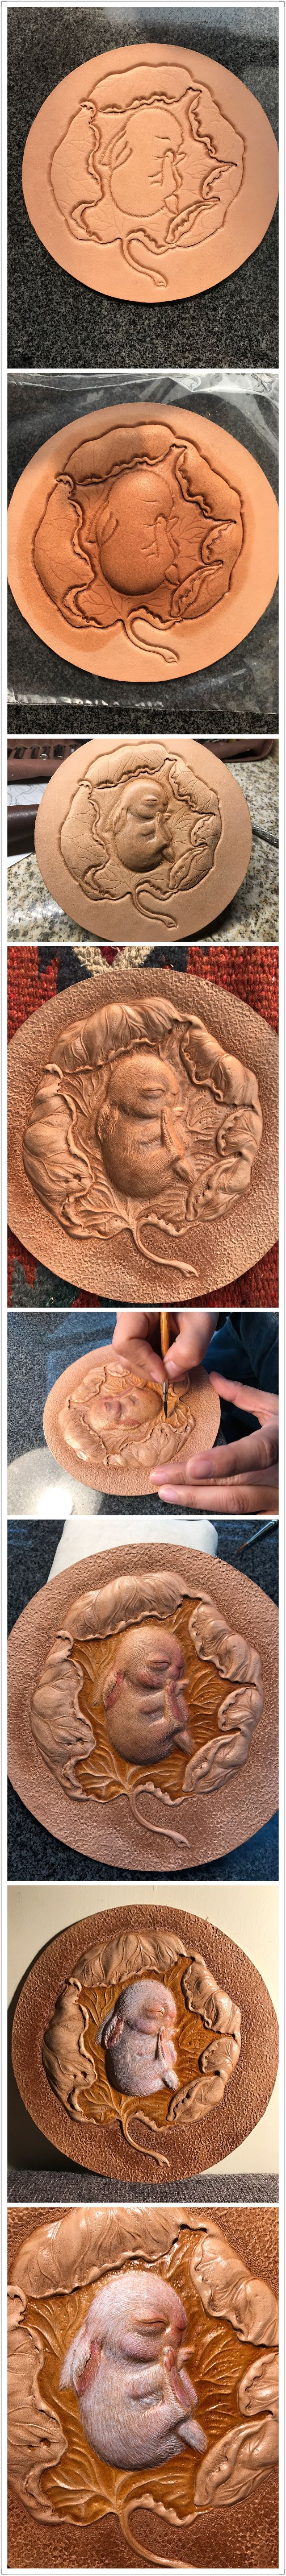 The procedure of Lovely rabbit leather carving#Leather #carving